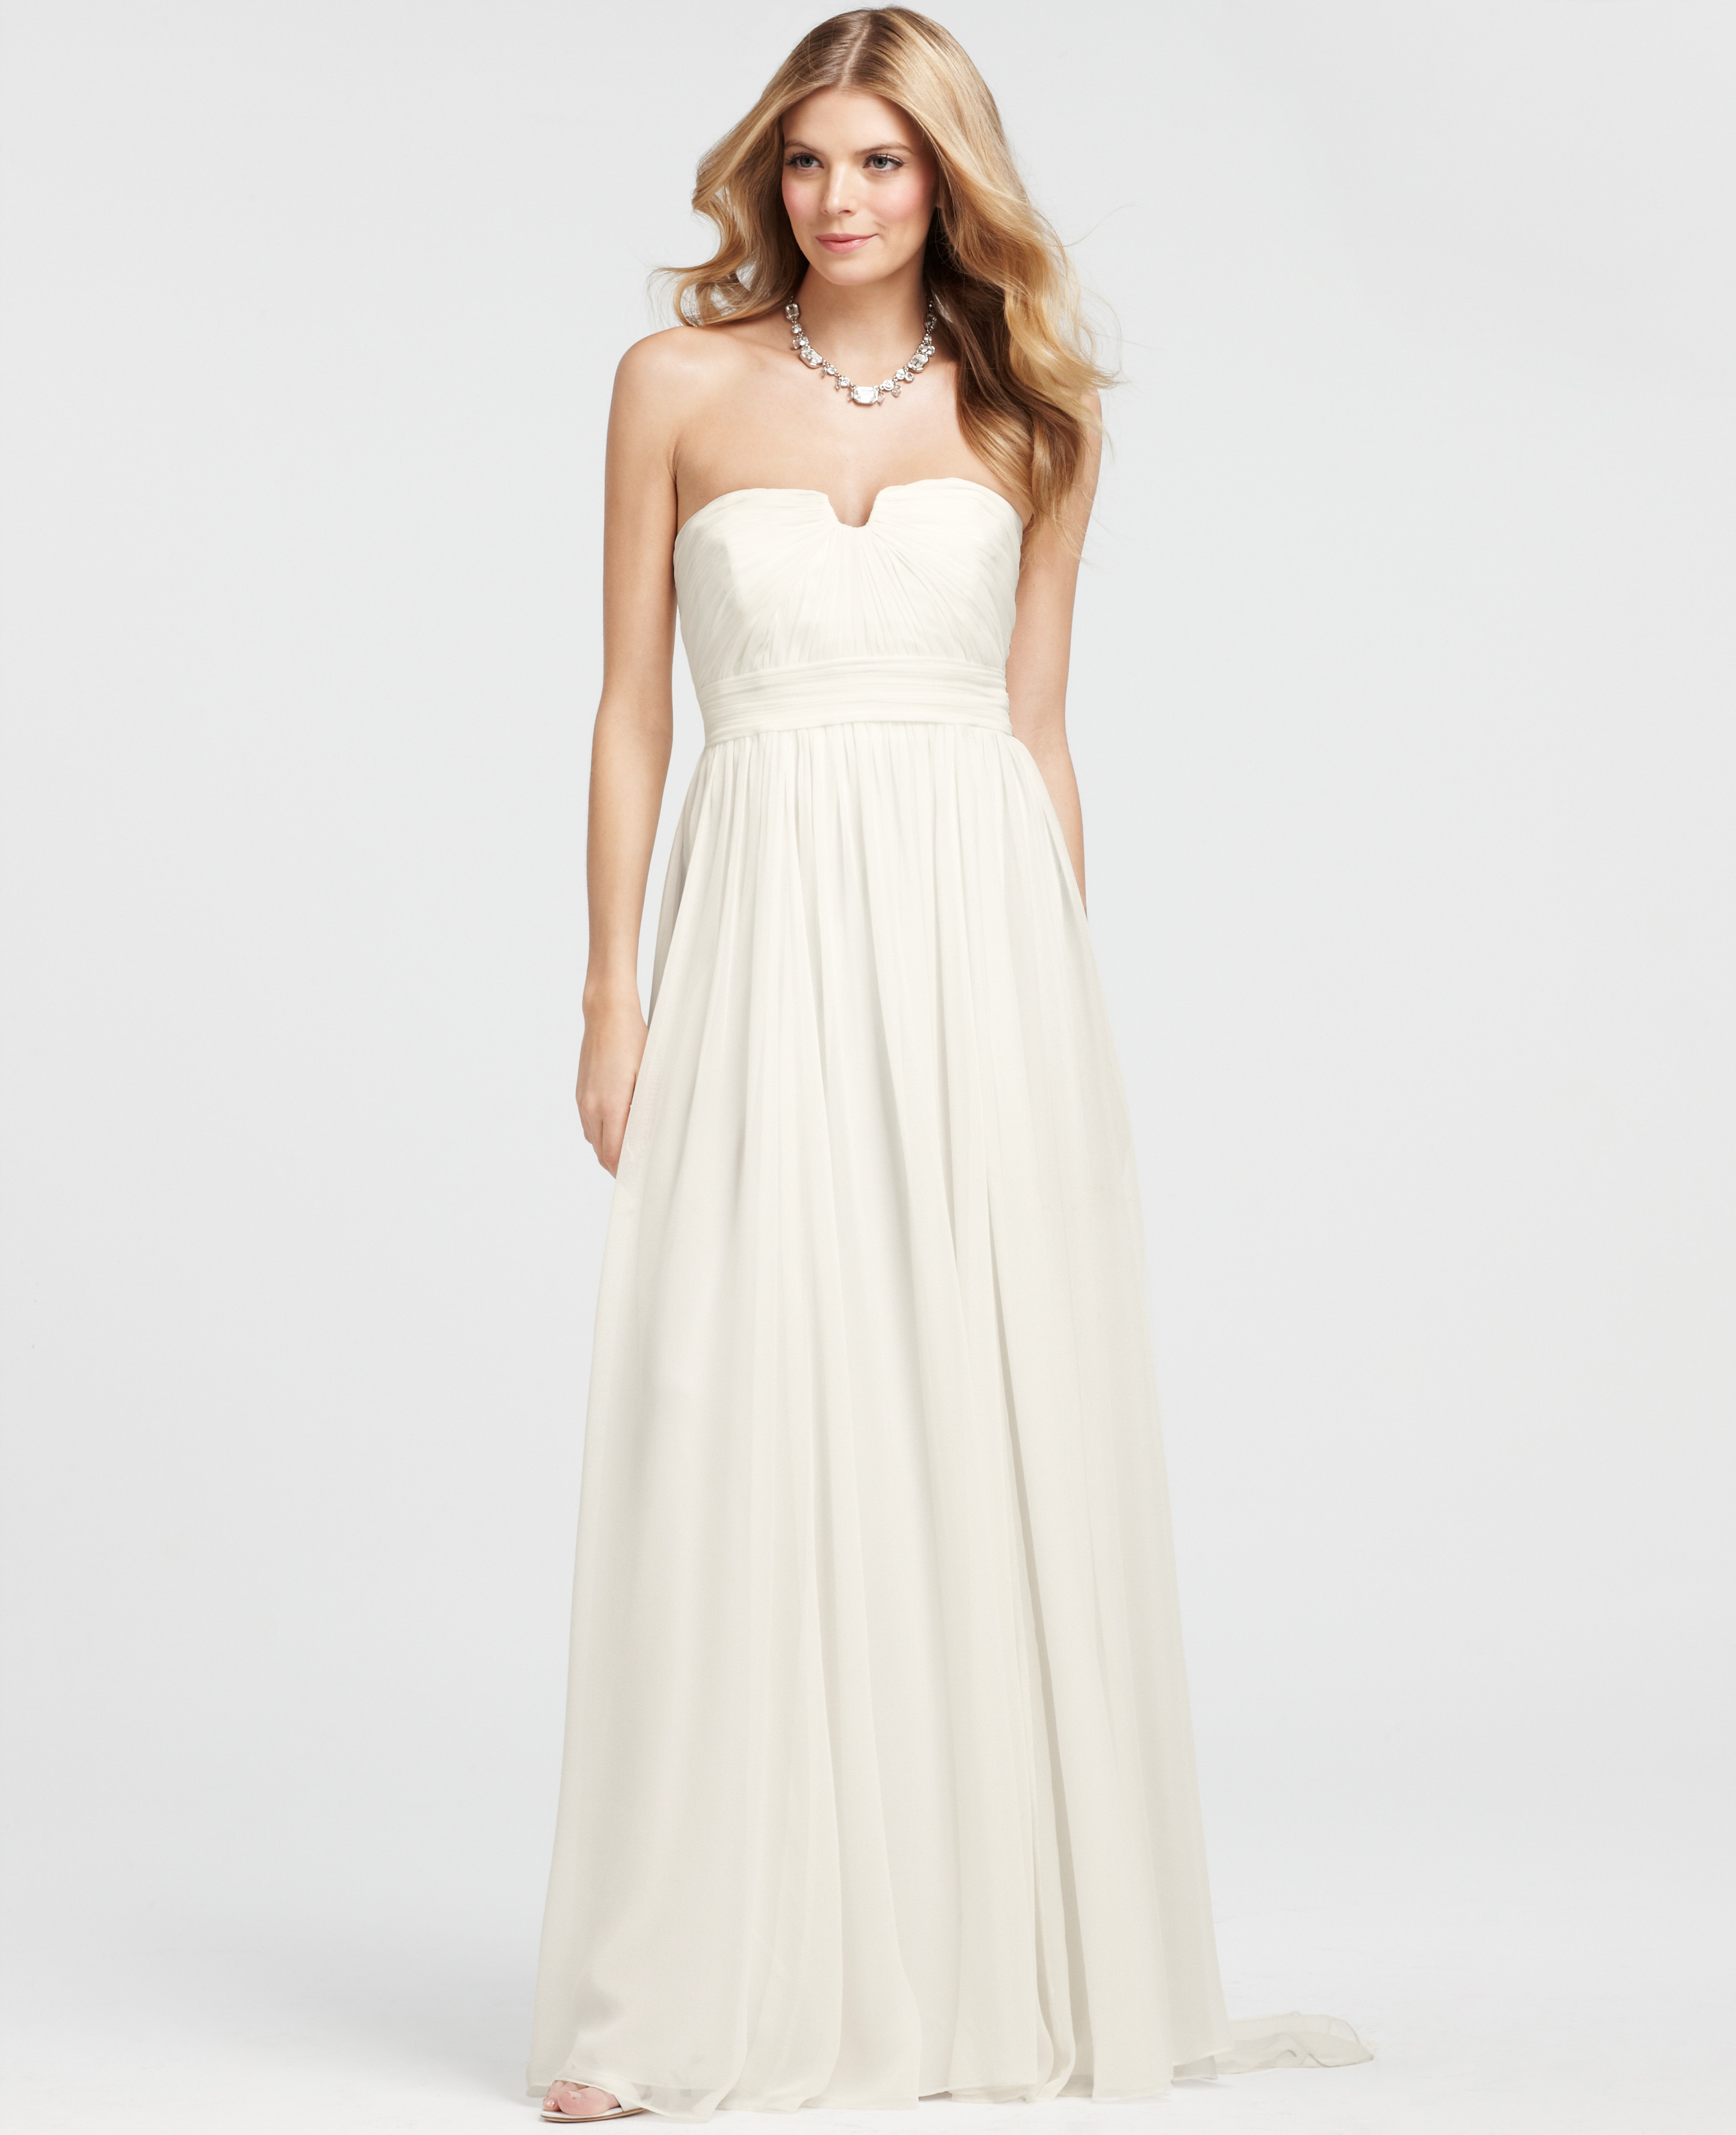 ann taylor vintage silk strapless wedding dress in white